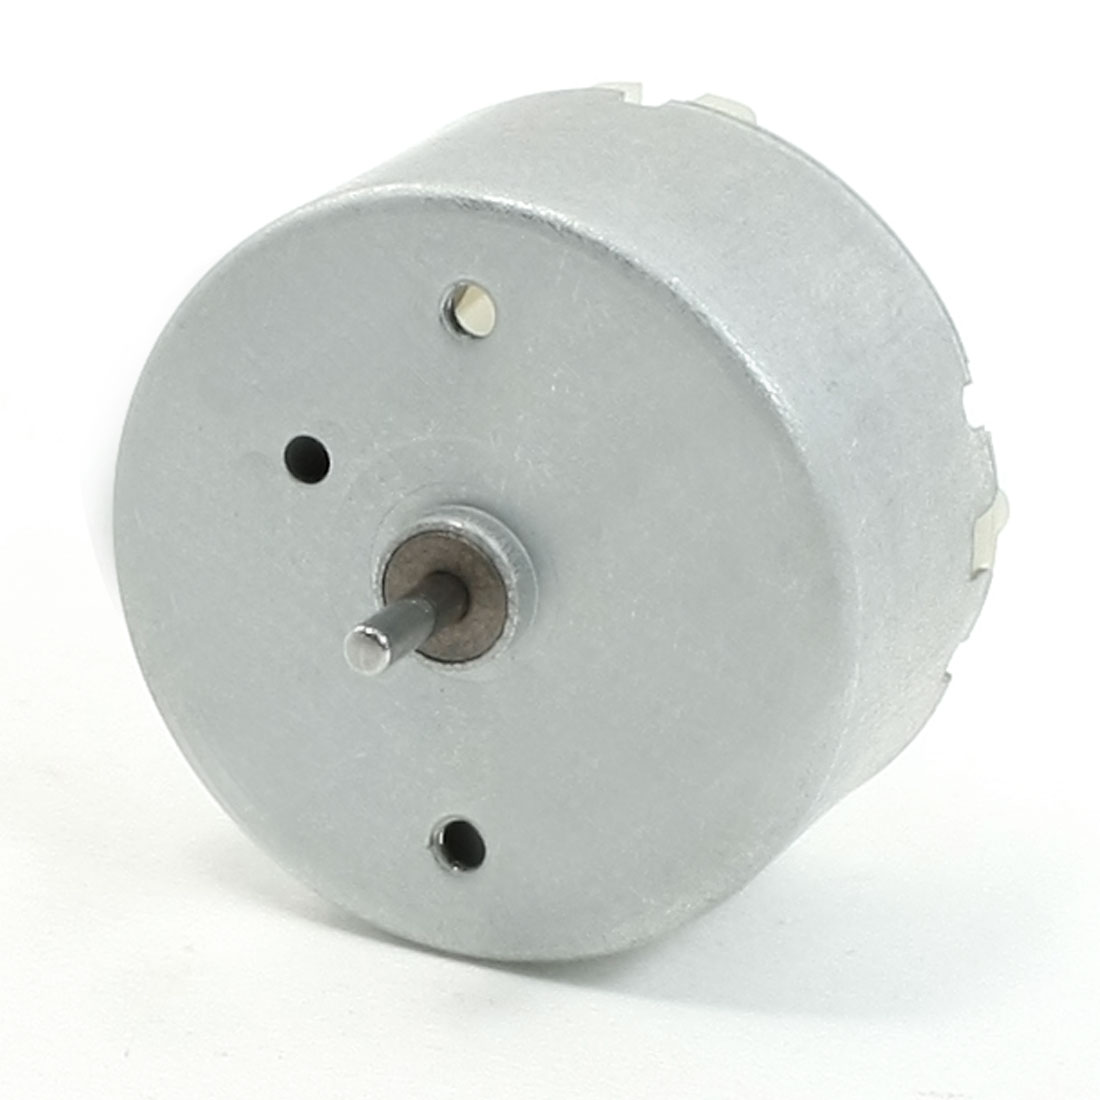 5300RPM Speed 12V High Torque Cylinder Shape Magnetic DC Geared Motor